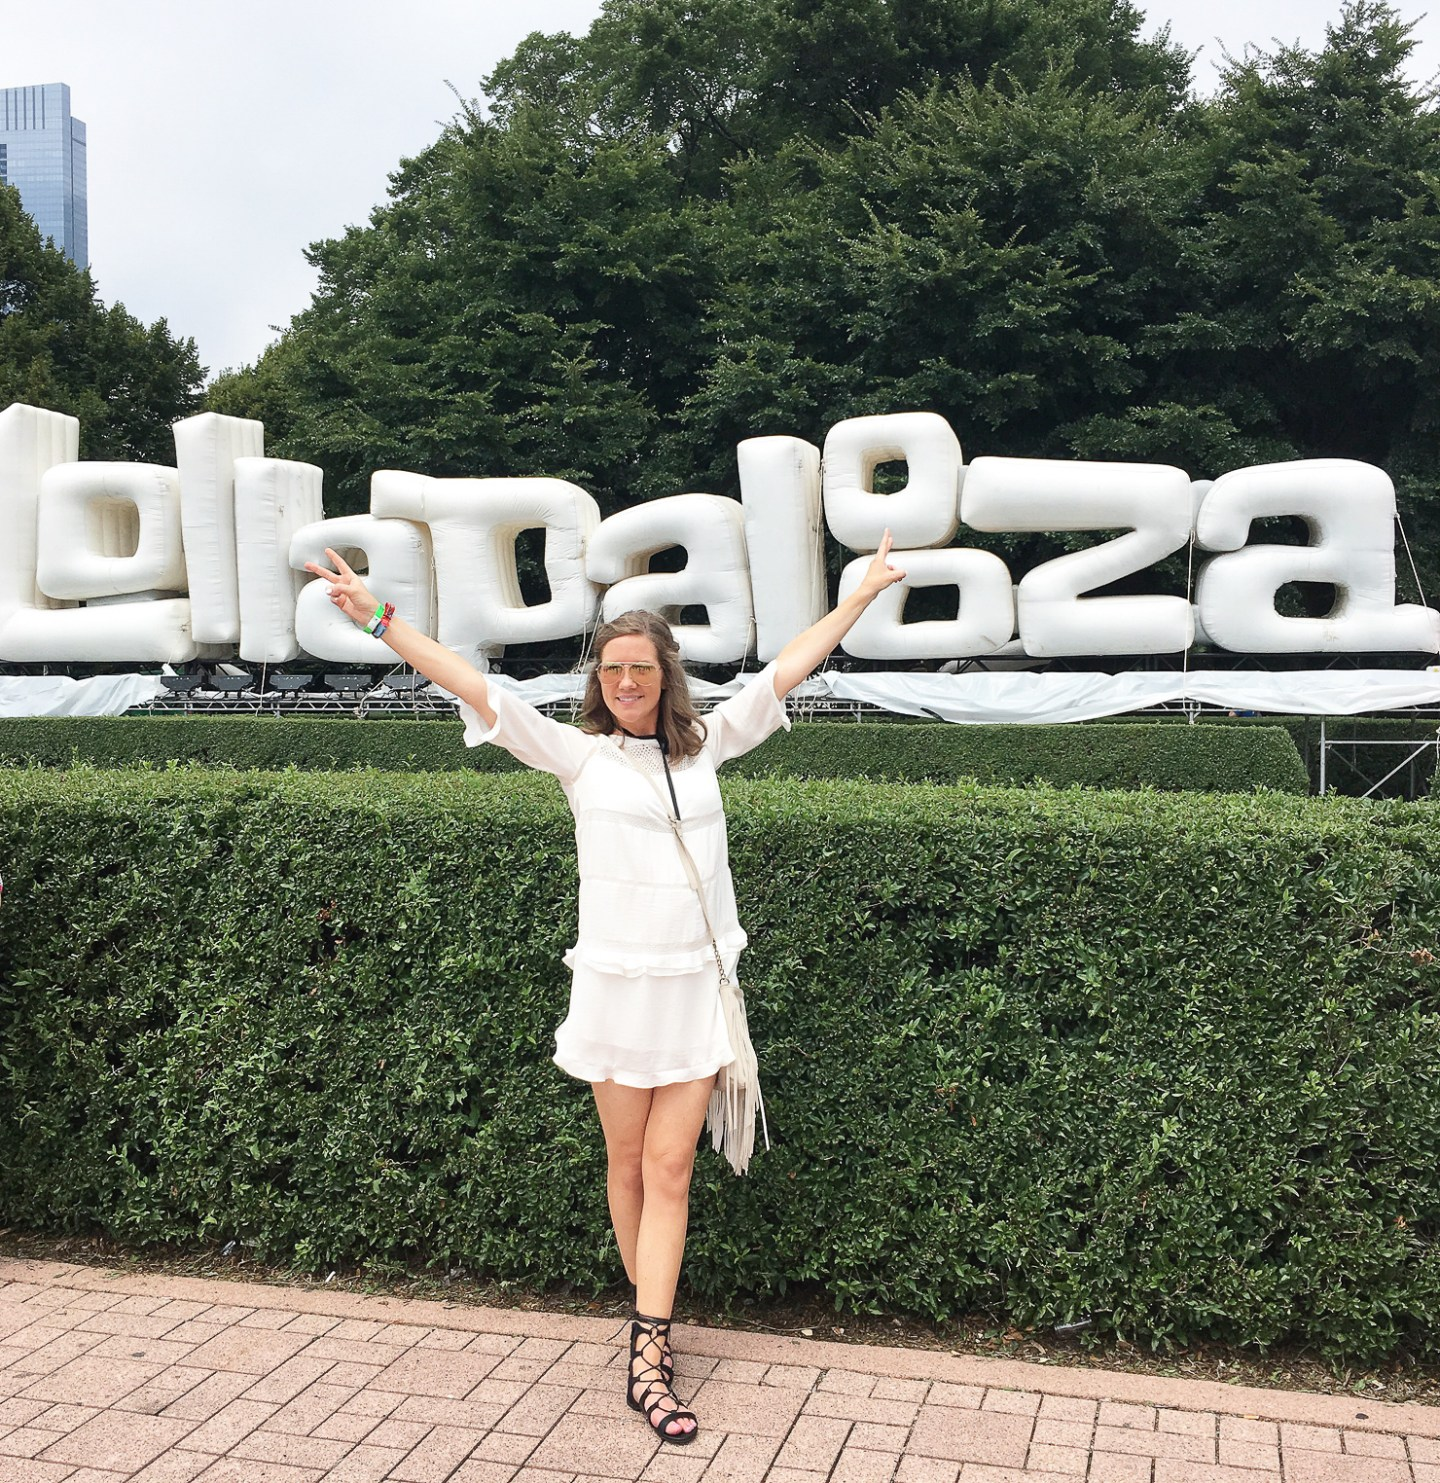 lollapalooza-25-wishes-and-reality-instagram